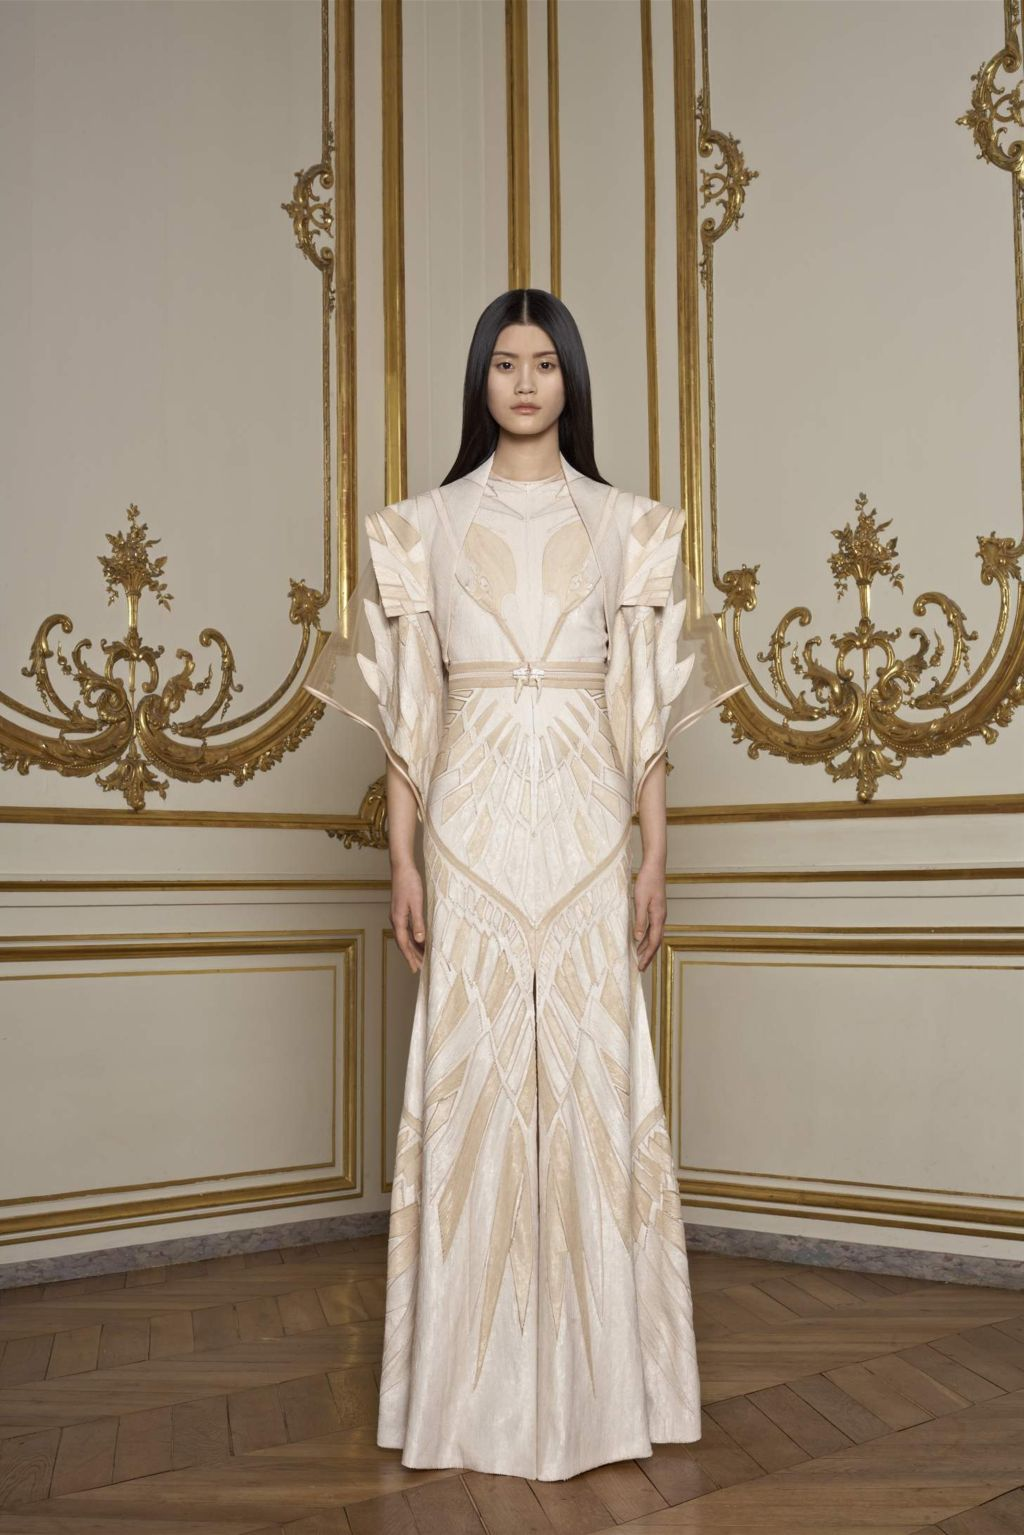 Givenchy, Haute Couture SS 2011 – The Ragged Priest